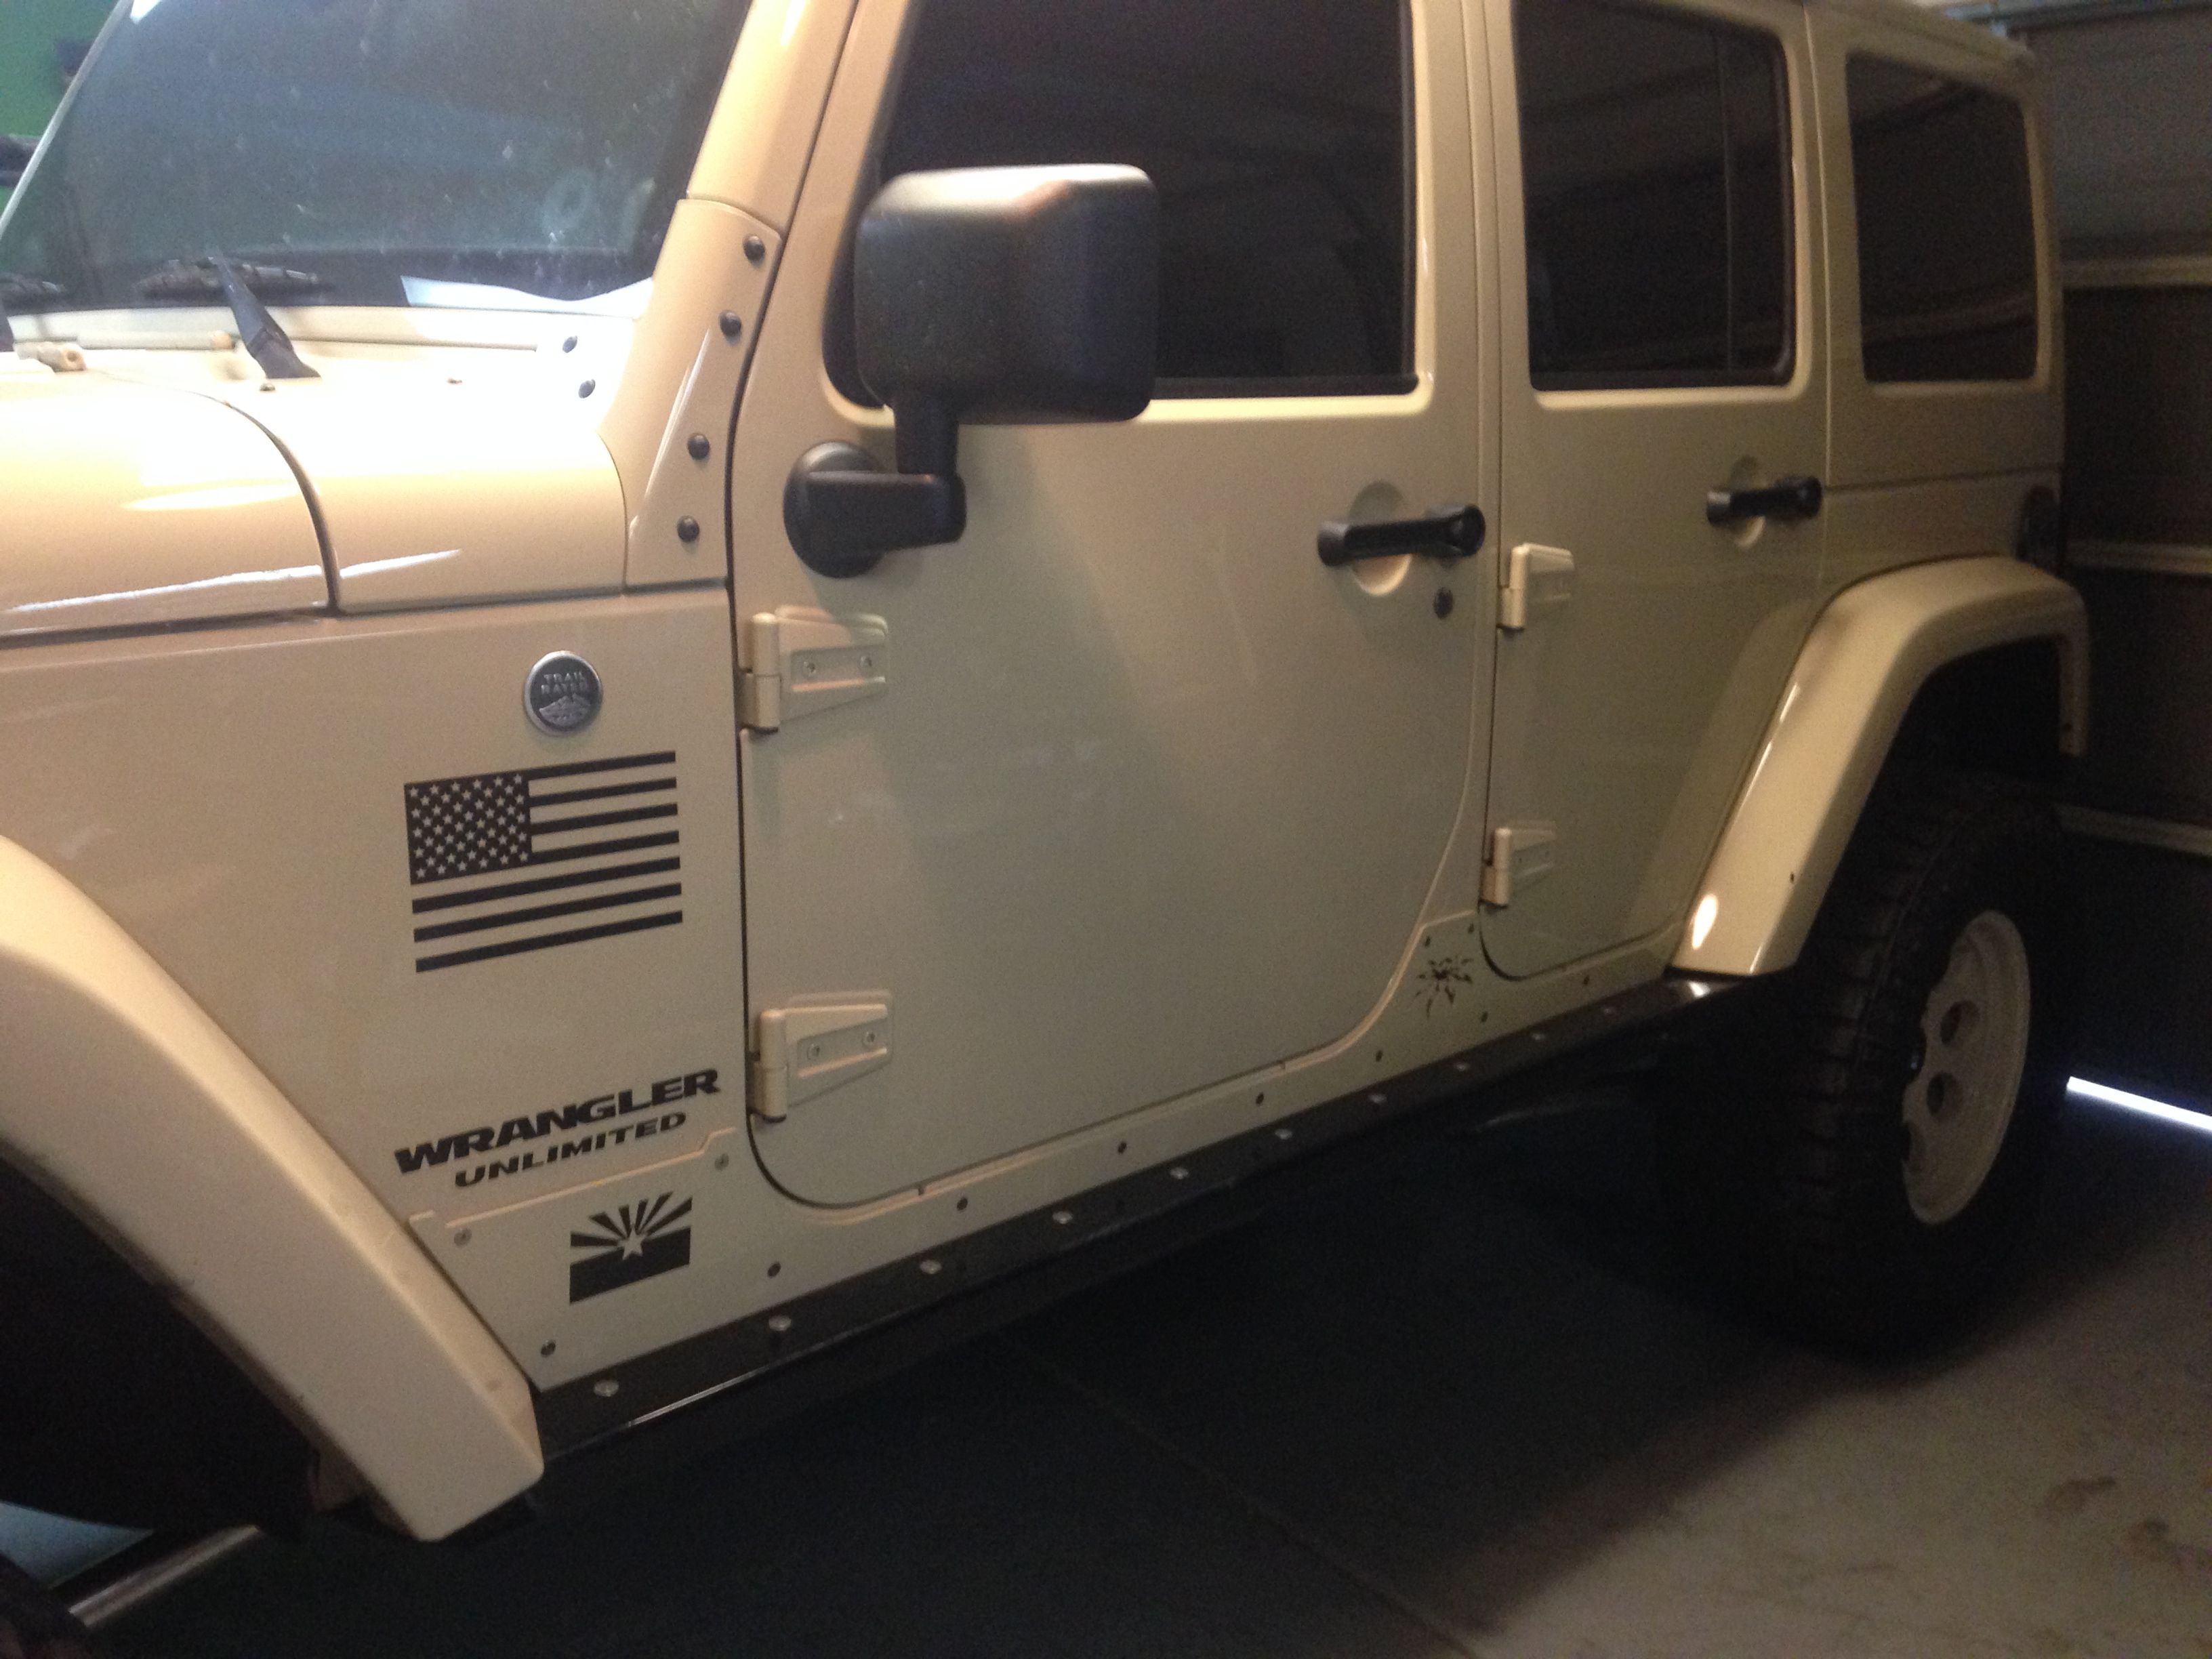 American Flag Decal From Www Decaljunky Com Applied To The Body Of A Jeep Jeep American Flag Decal Jeep Lover